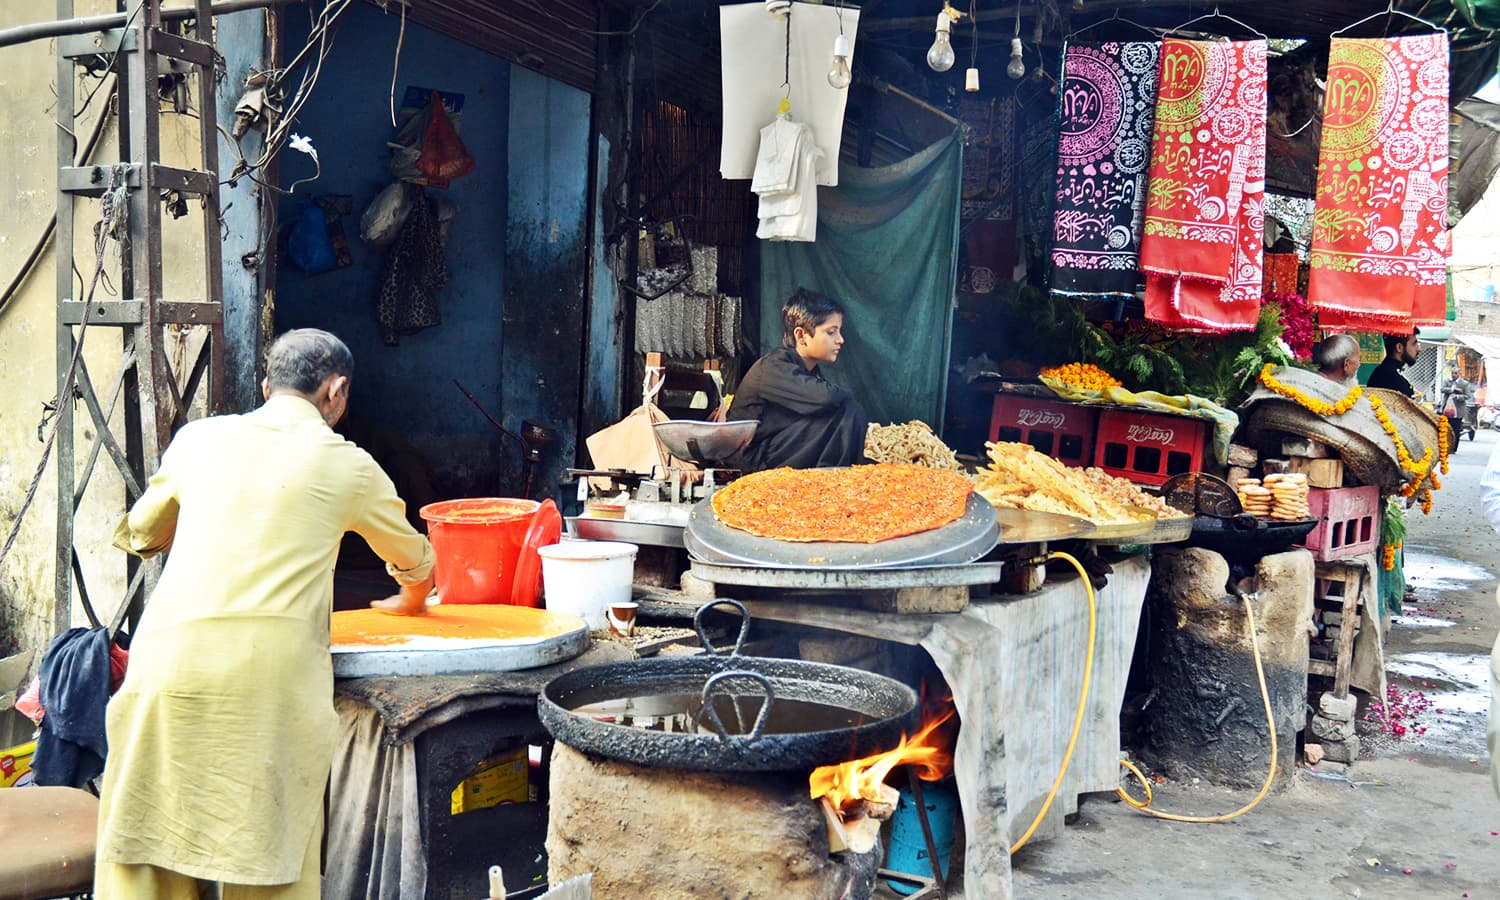 Vendors selling food. —Photo by Abdullah Khan